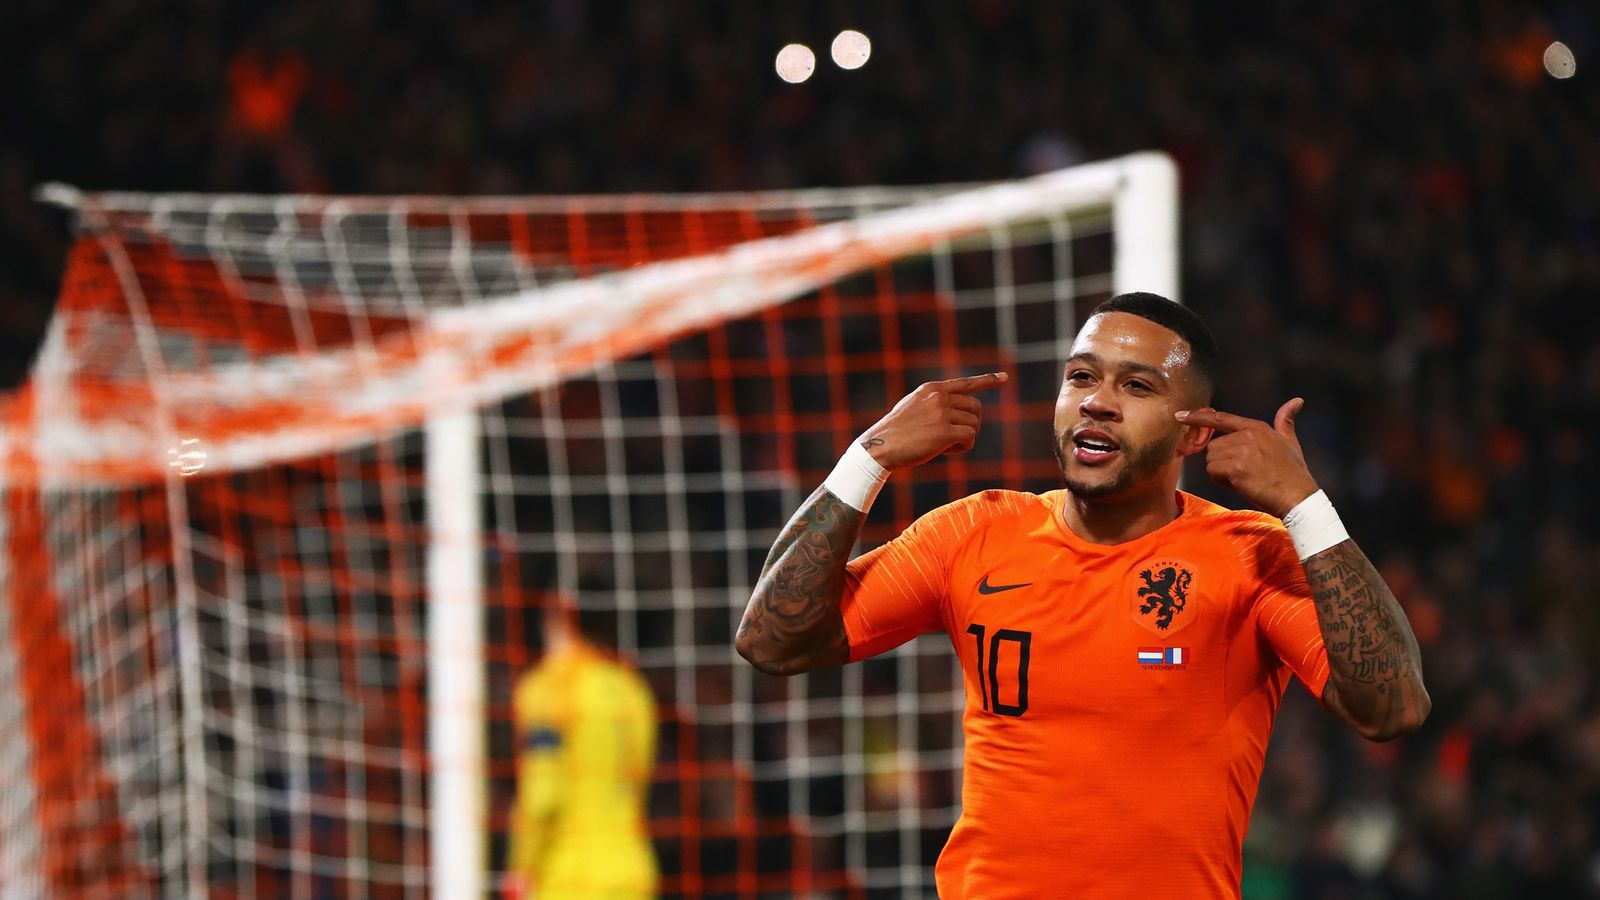 Memphis Depay was too young at Manchester United says Ronald Koeman |  Football News | Sky Sports